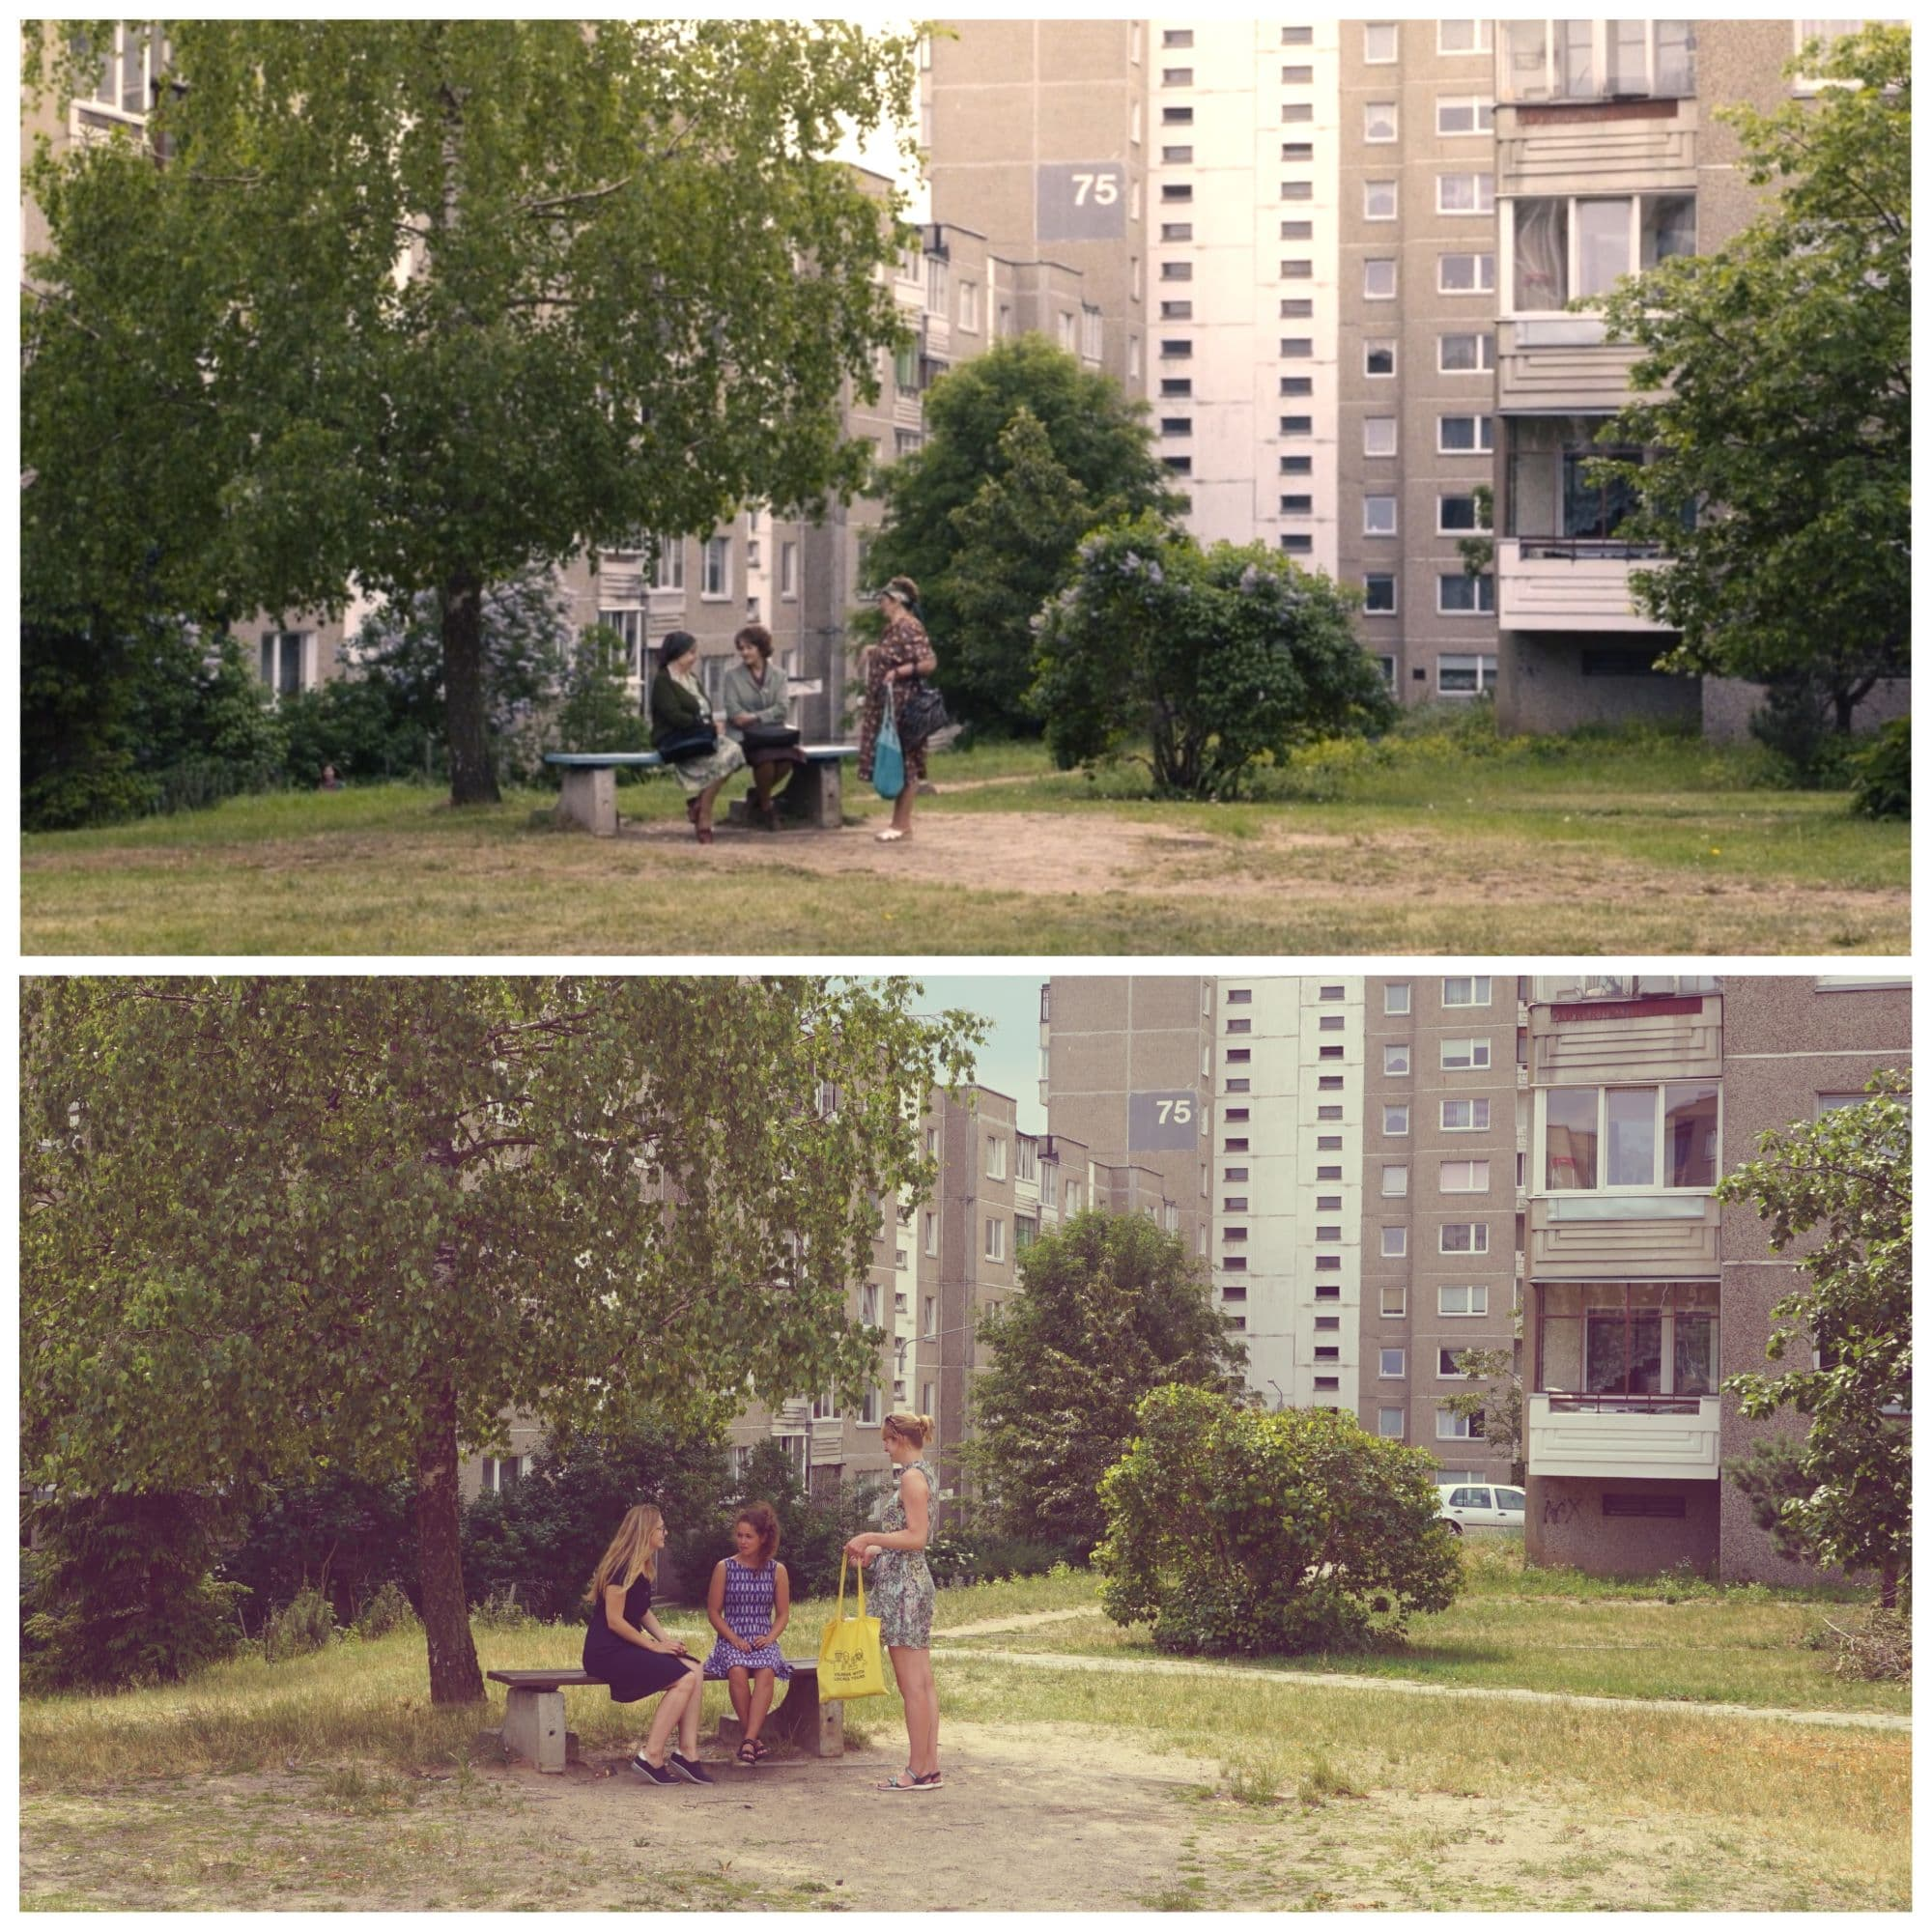 One of Chernobyl miniseries filming locations in Vilnius